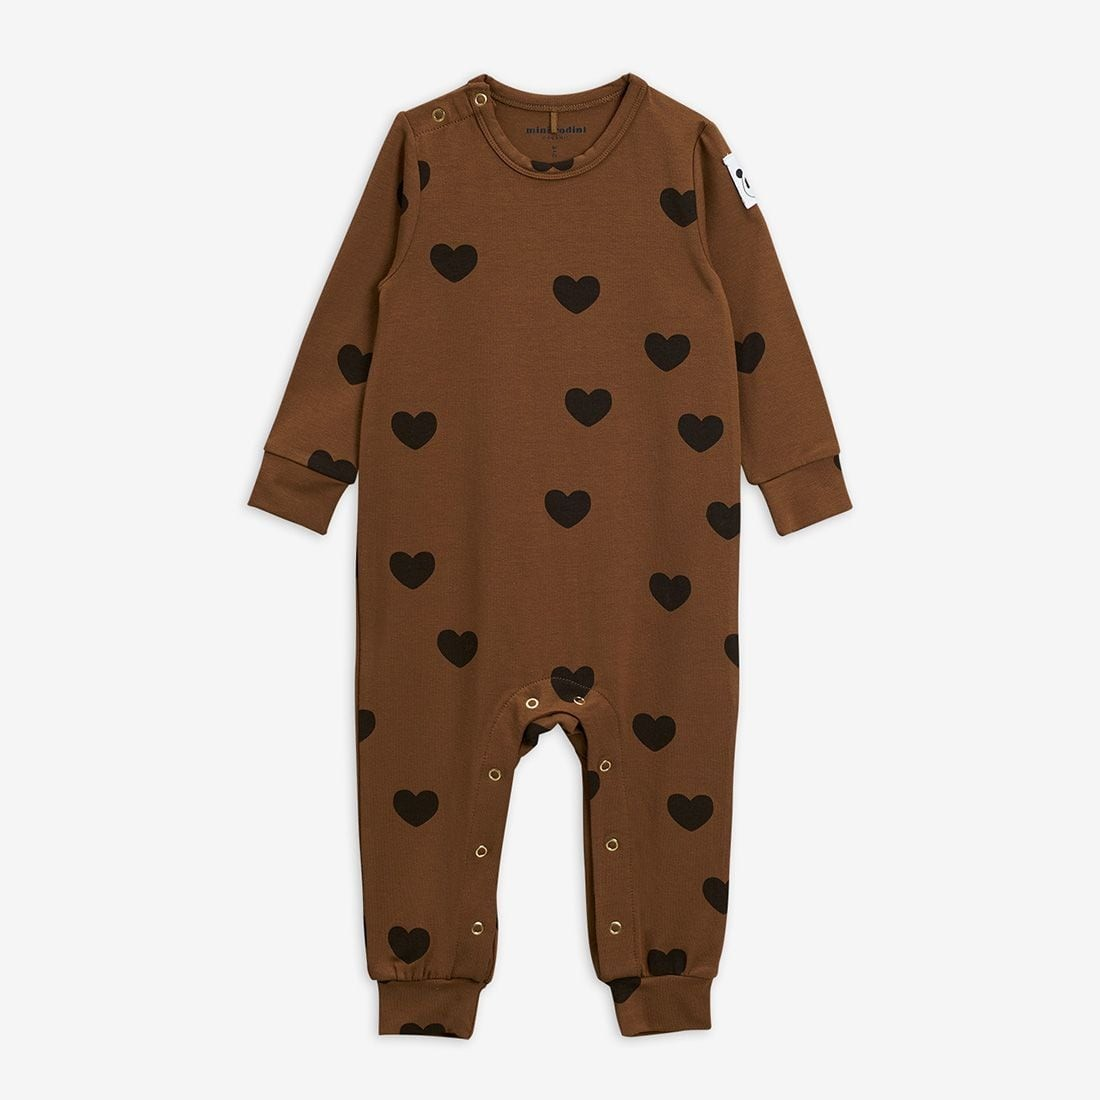 Cute Basic Hearts Jumpsuit in Brown